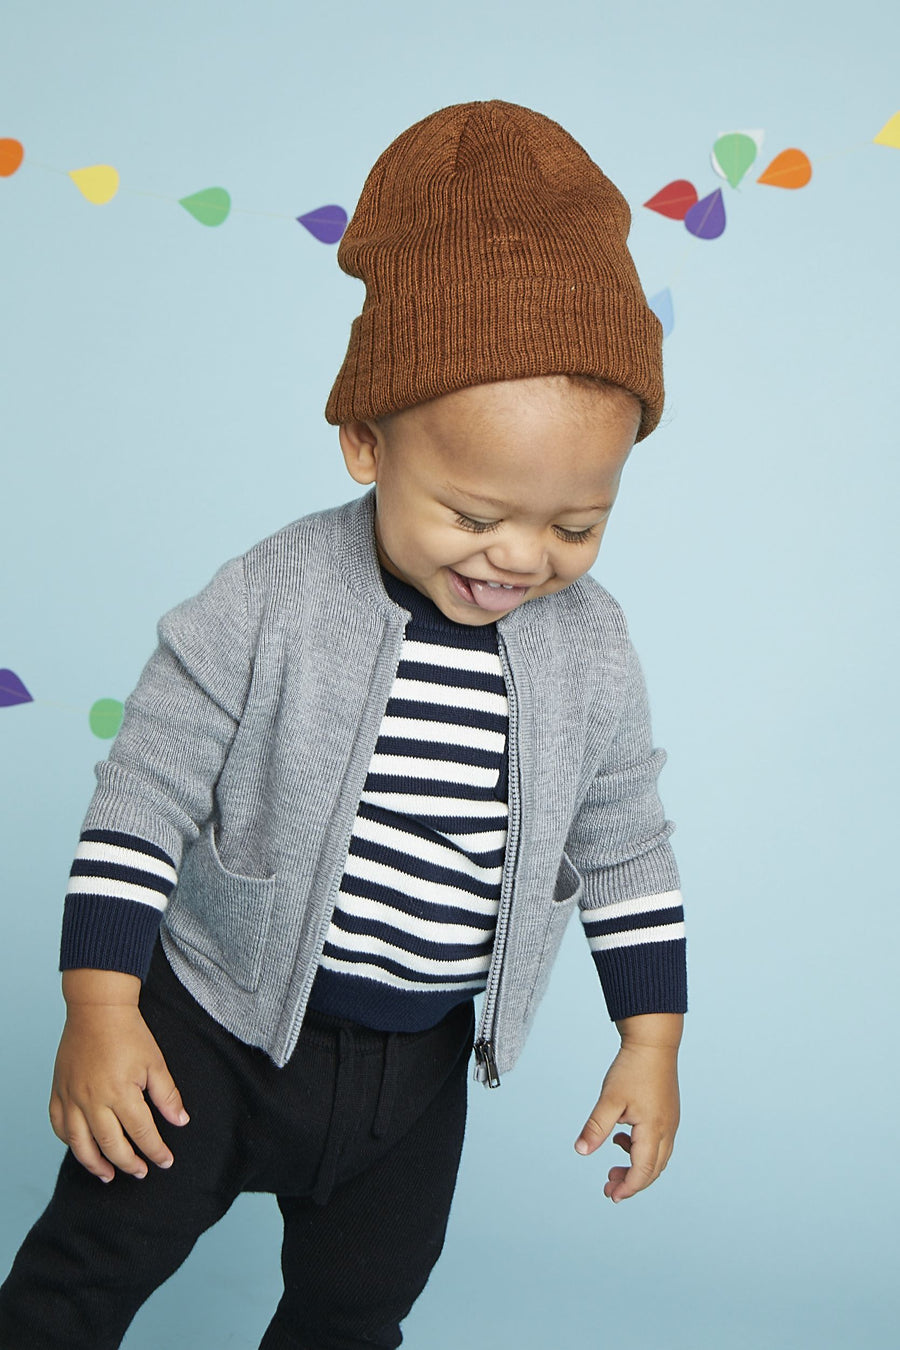 Billie Play Set Top - Navy/White Stripe Top Giggle